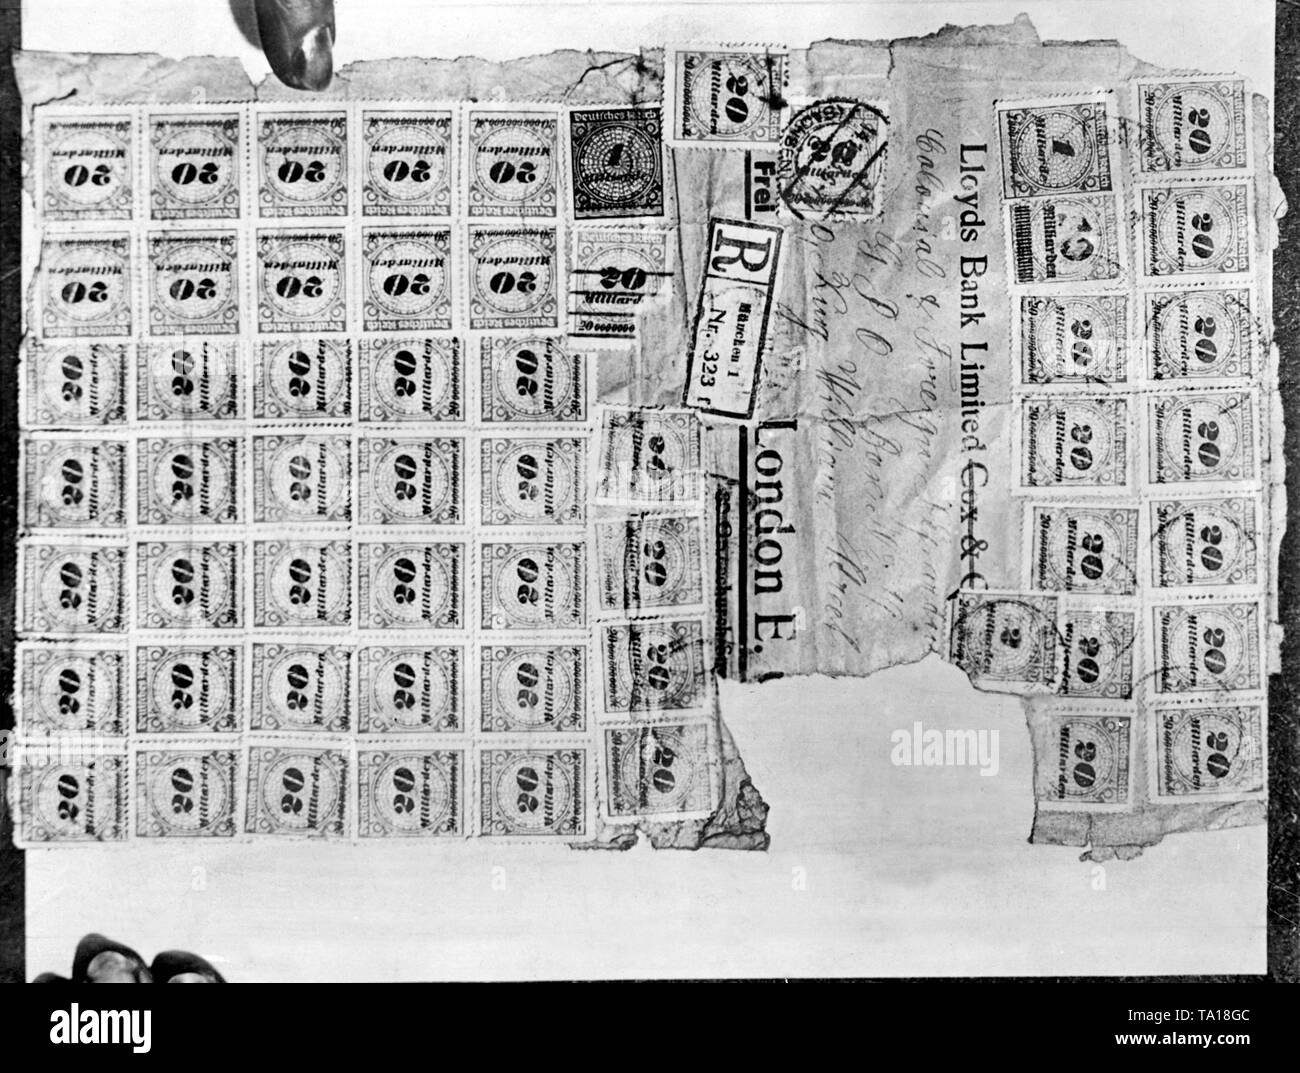 Germany Hyperinflation Stock Photos & Germany Hyperinflation